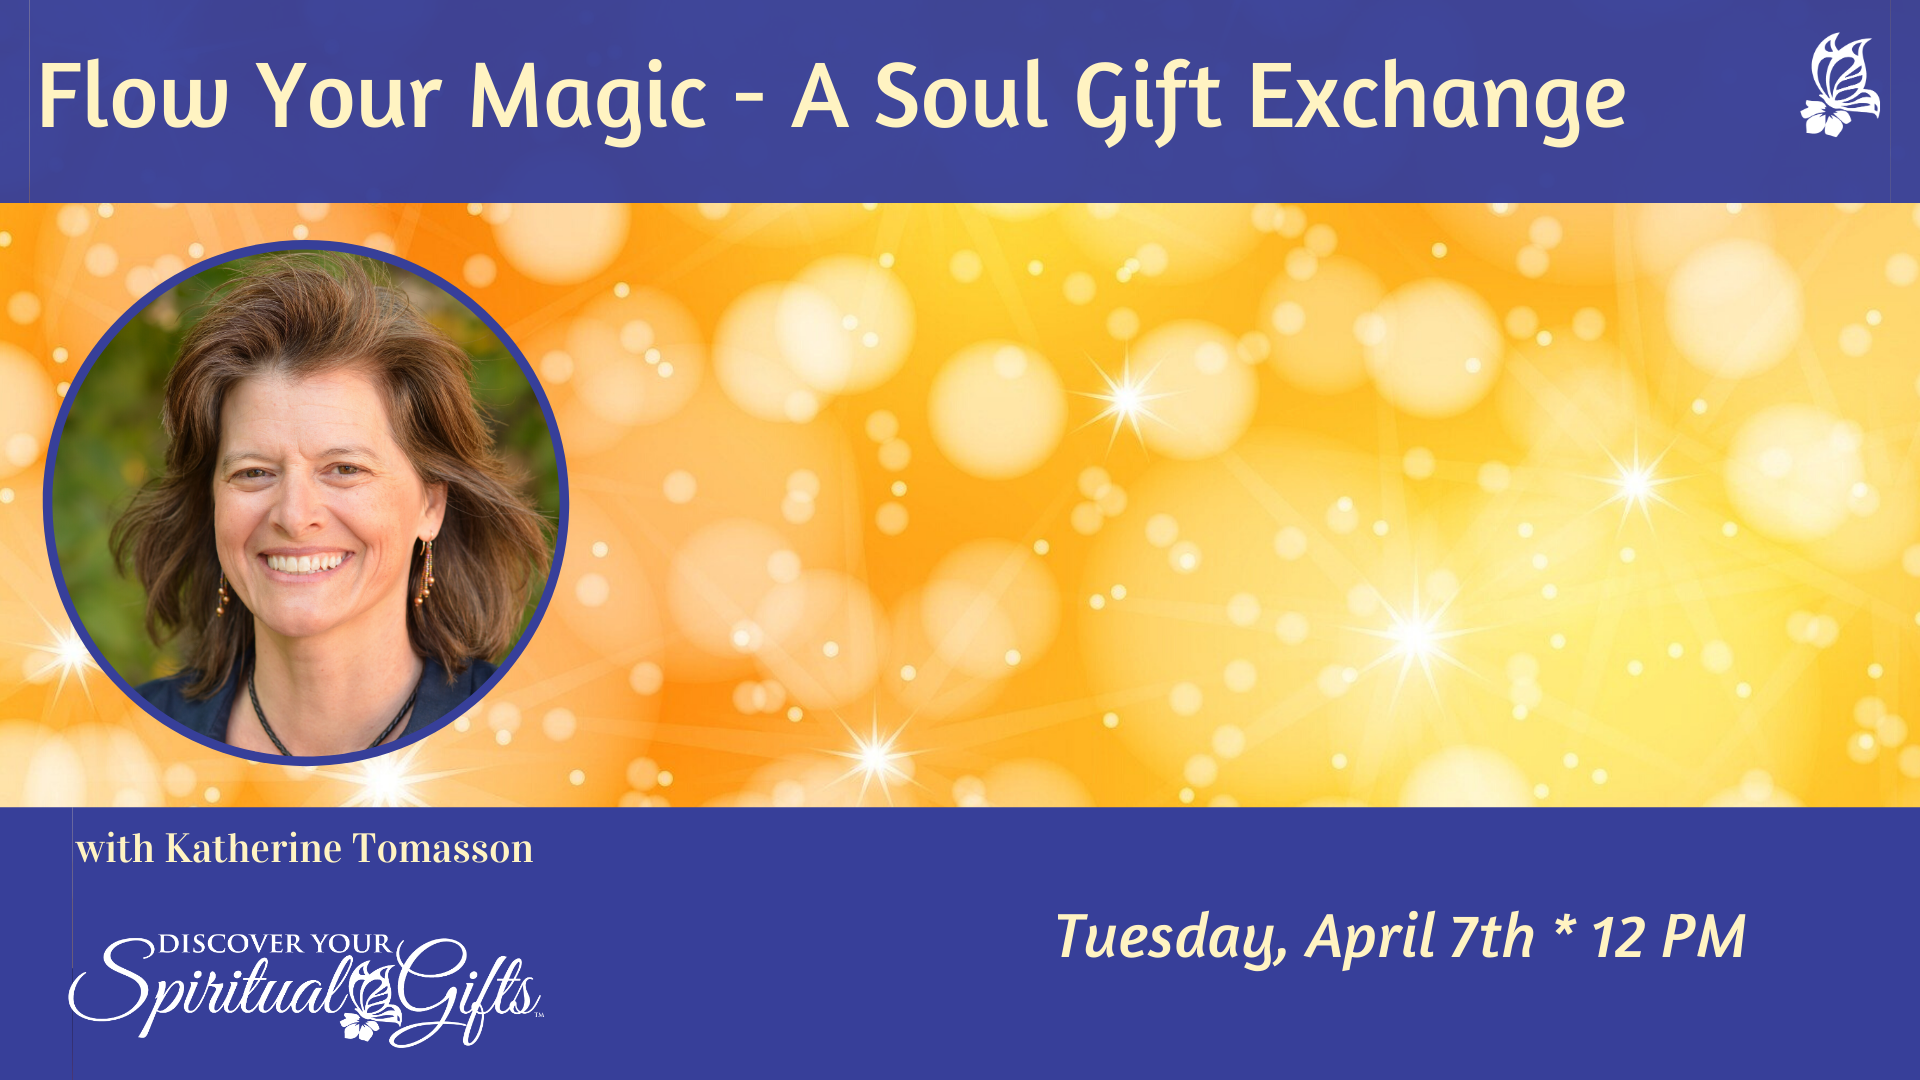 [ONLINE] Flow Your Magic - A Soul Gift Exchange